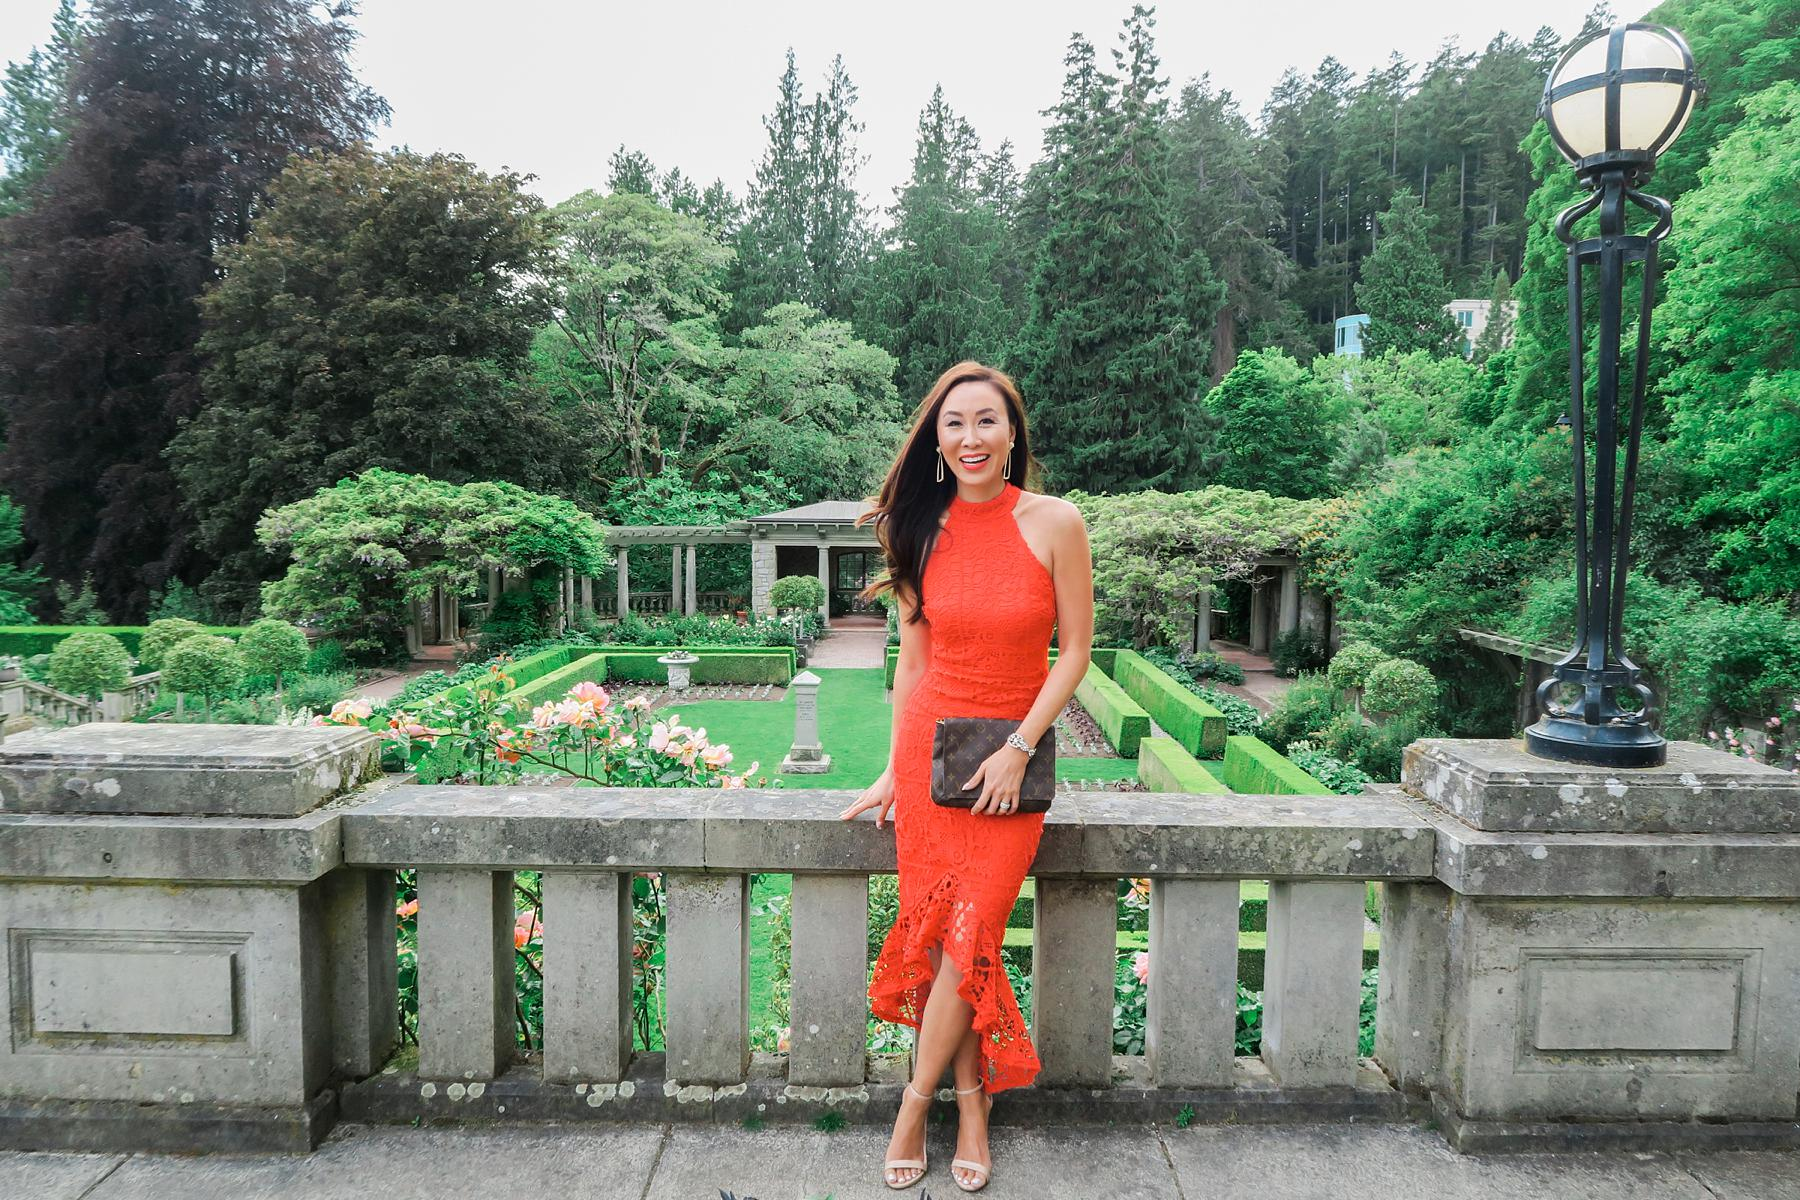 hatley castle wedding in Victoria Canada wearing a red lace dress like the emoji